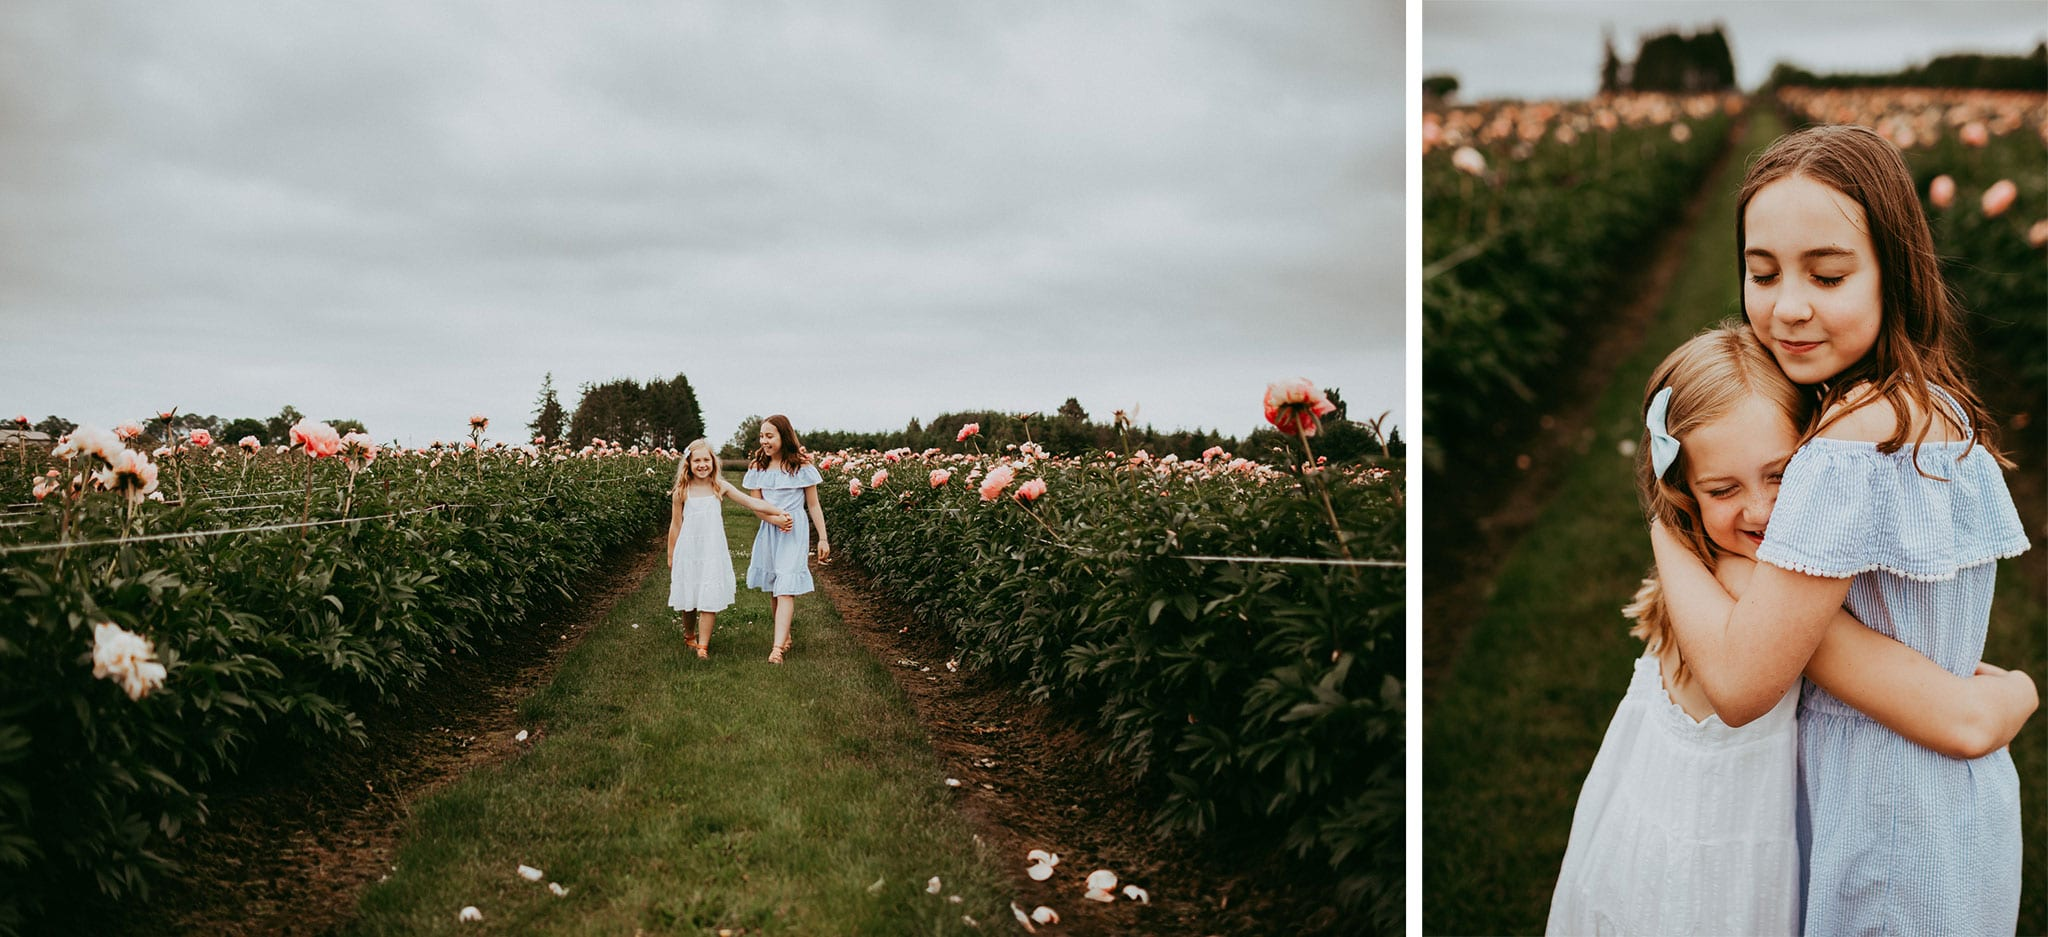 Sisters hugging on a cloudy day during photo session at peony flower garden